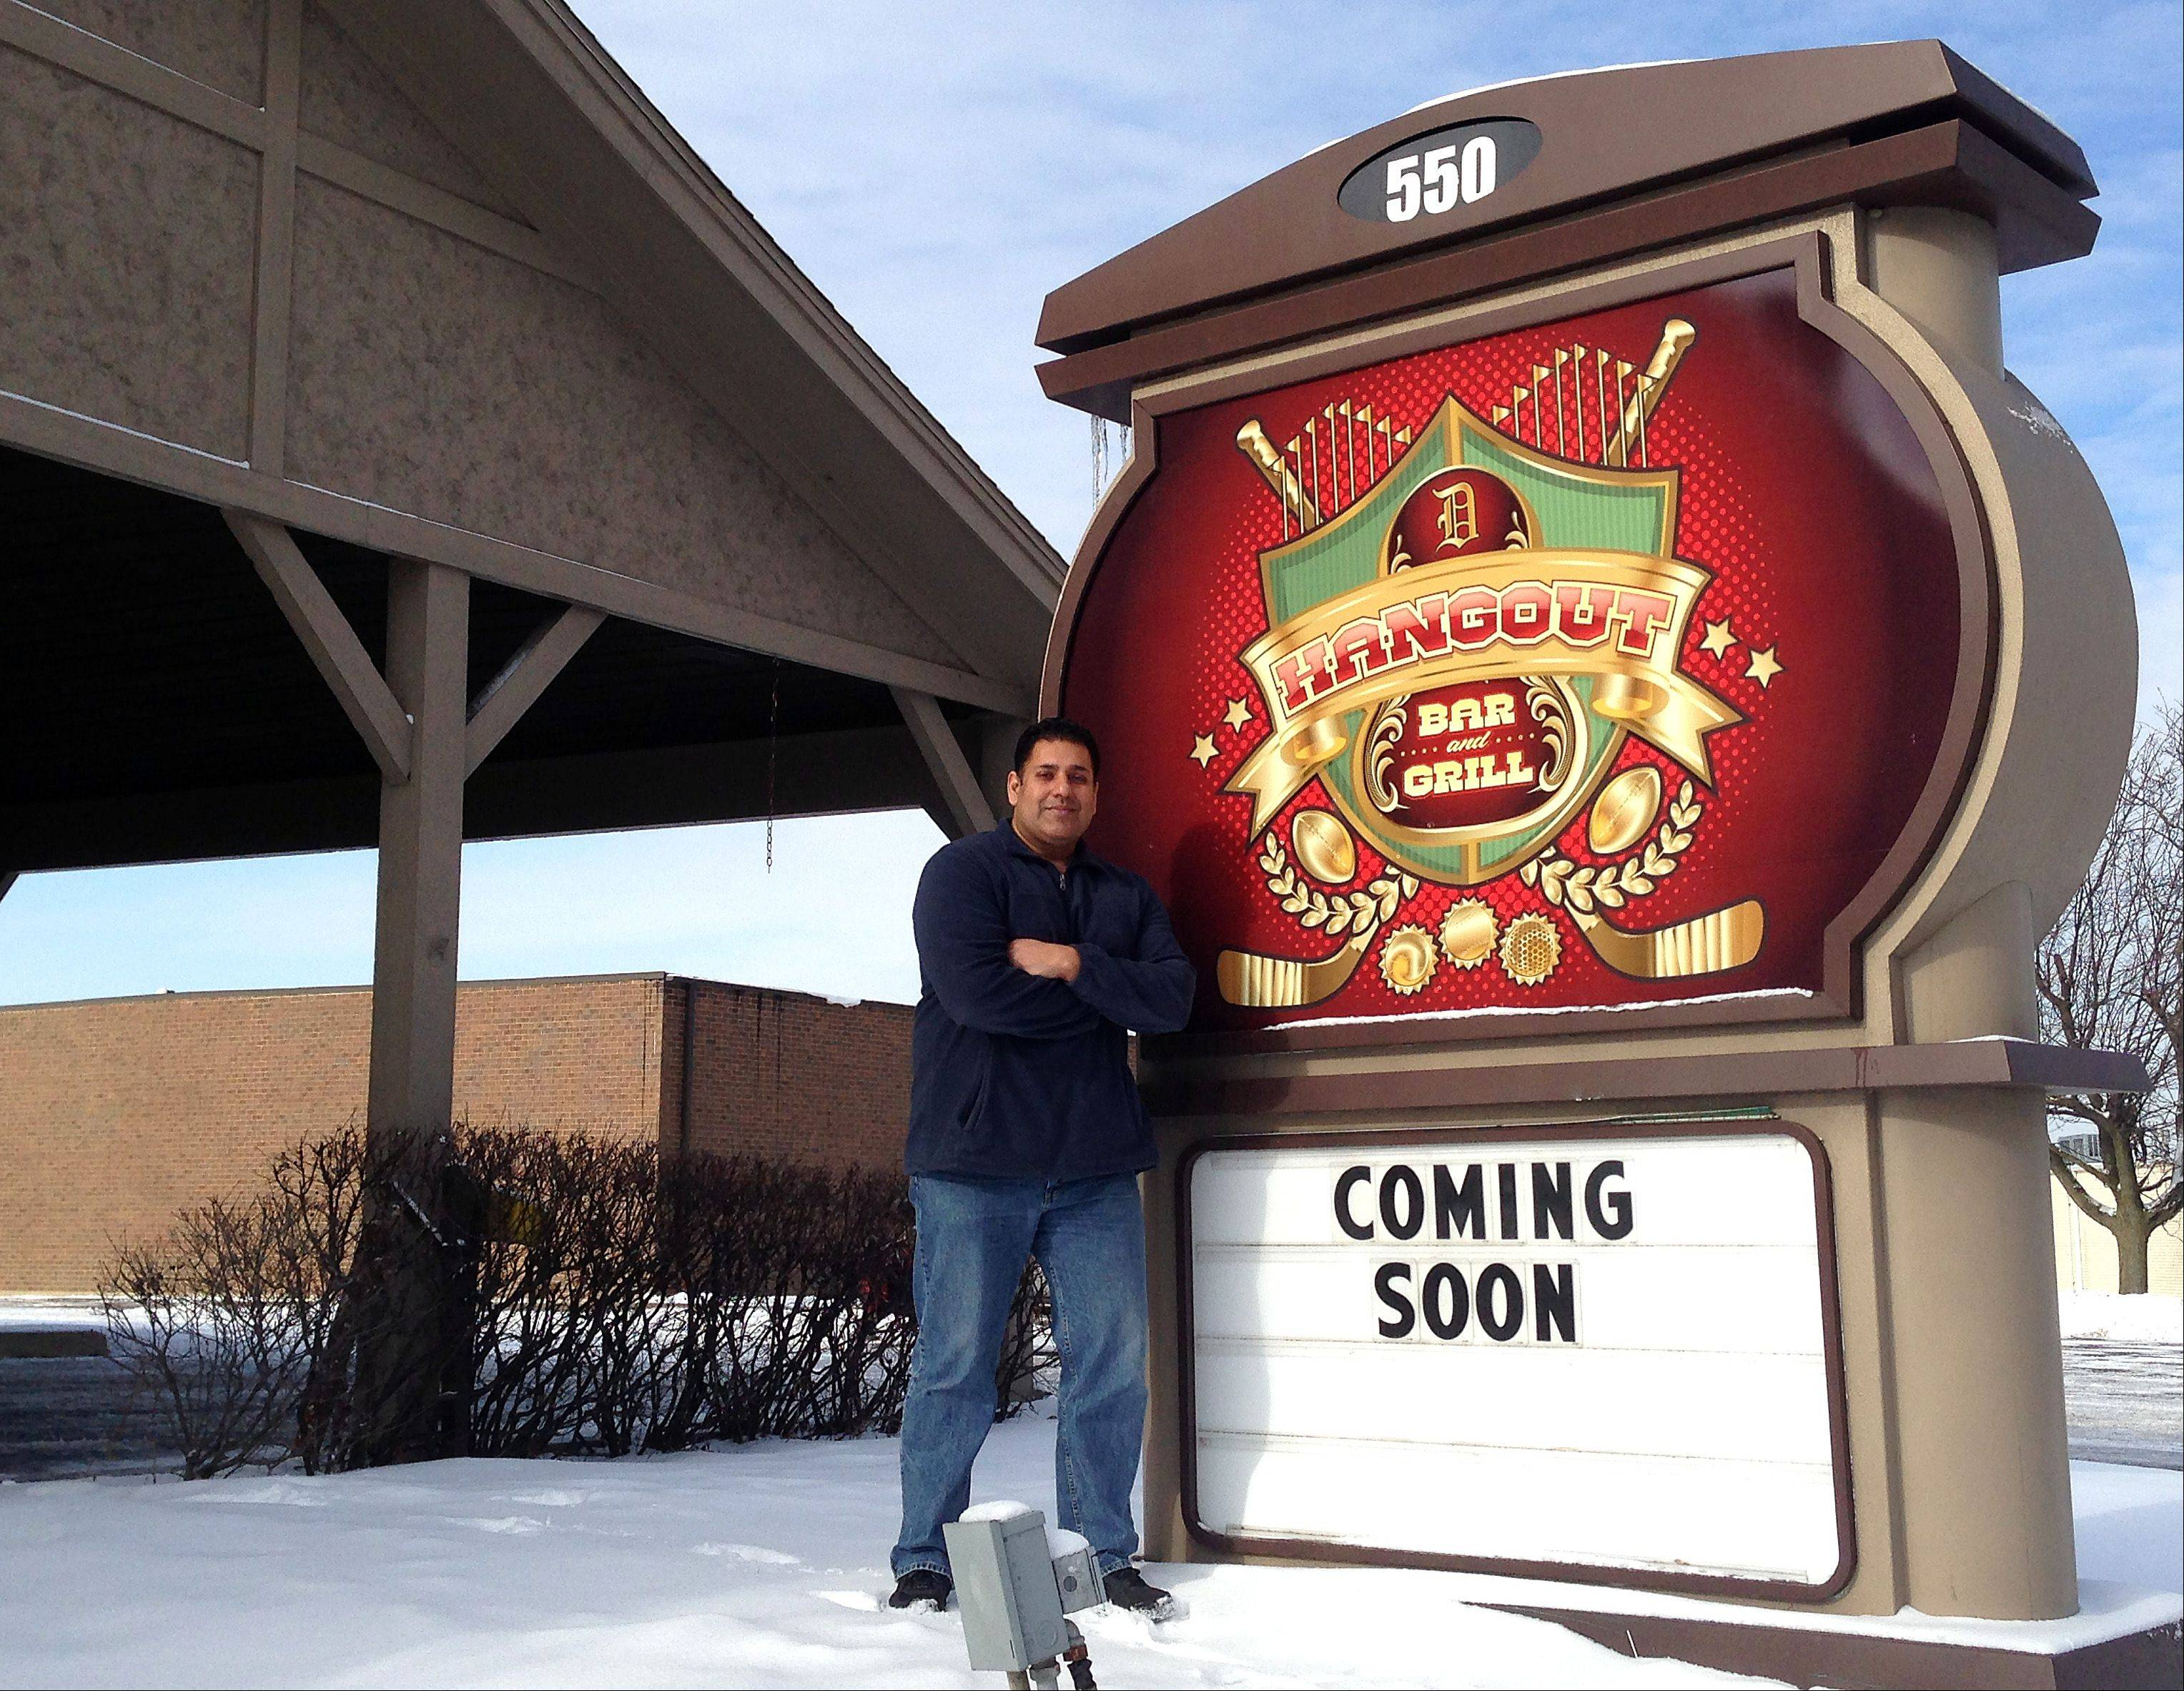 D Hangout Bar and Grill at 550 S. McLean Blvd. in Elgin will have its grand opening Friday, said owner Mike Deol of Streamwood, a former professional wrestler who went by the name Killer Khalsa Sing.